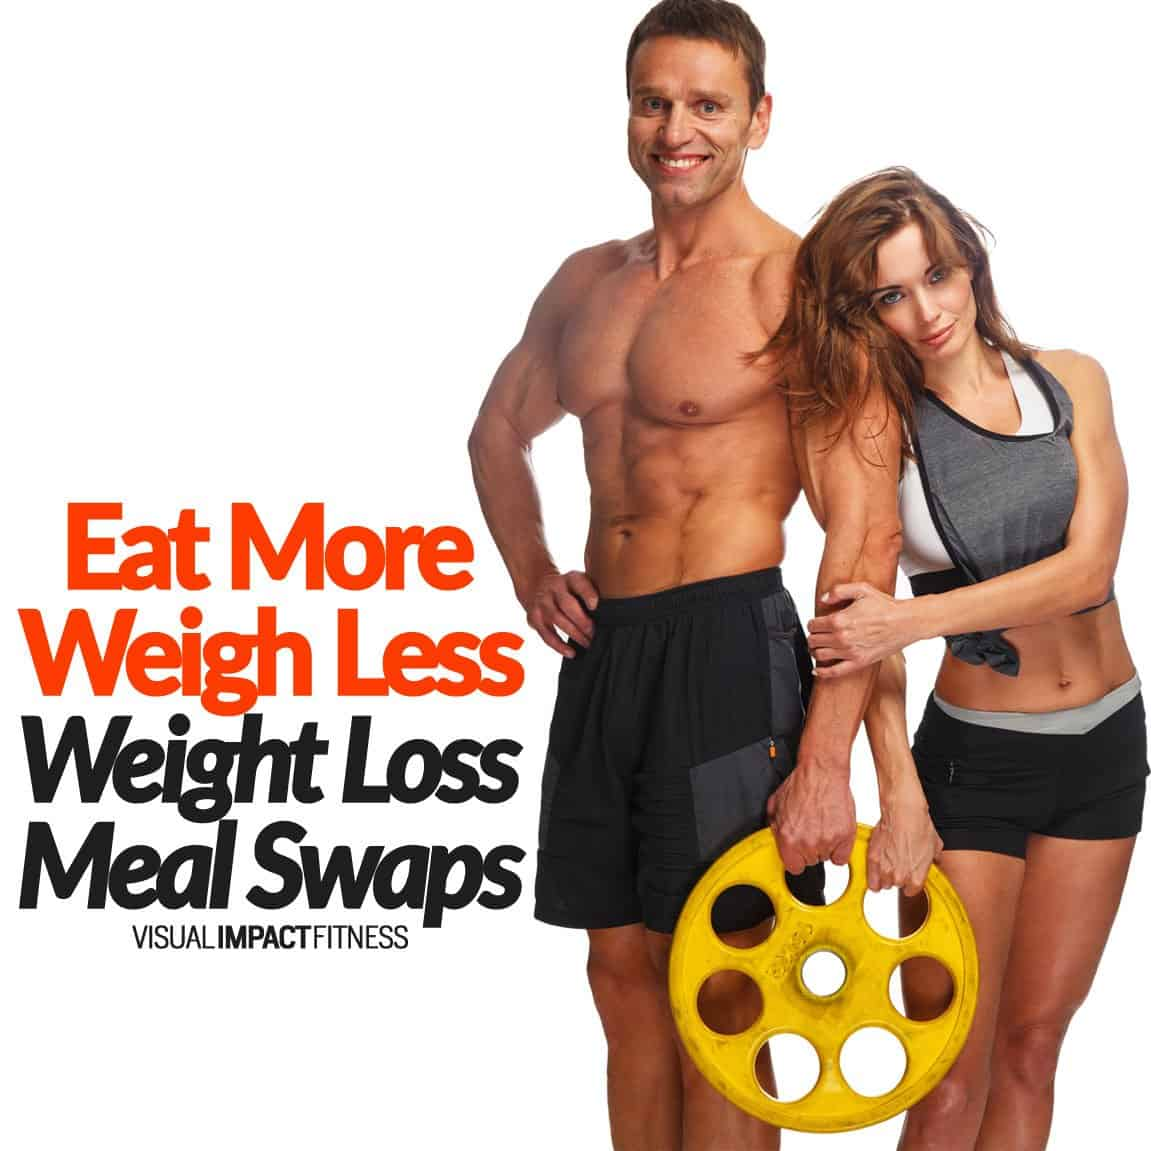 Eat More Weigh Less (Weight Loss Meal Swaps)